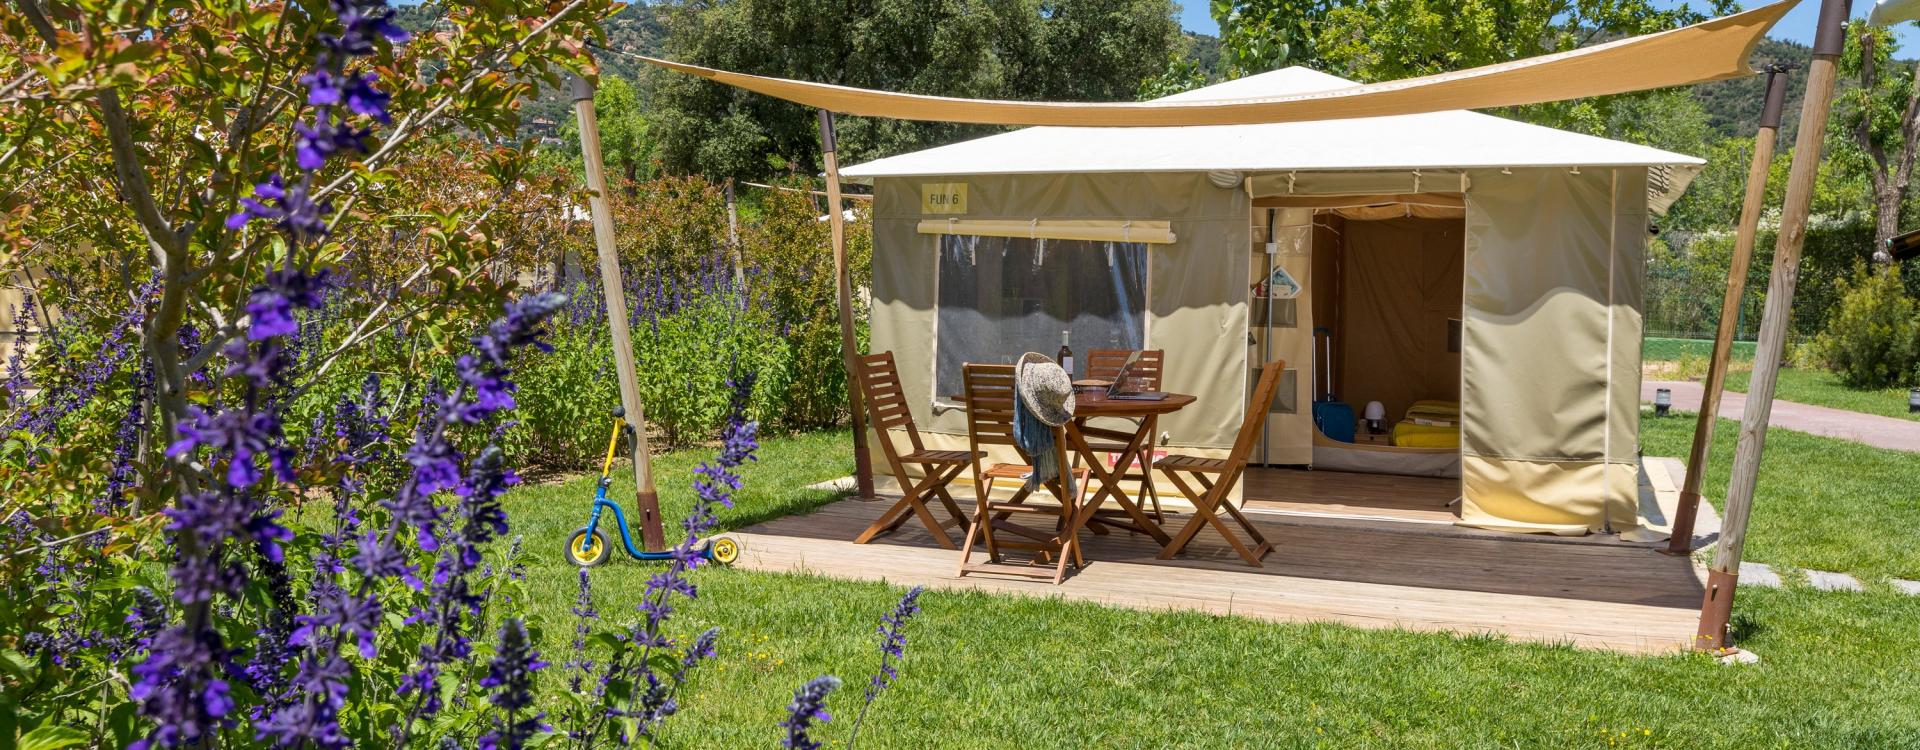 Glamping tents with terrace in Playa de Aro